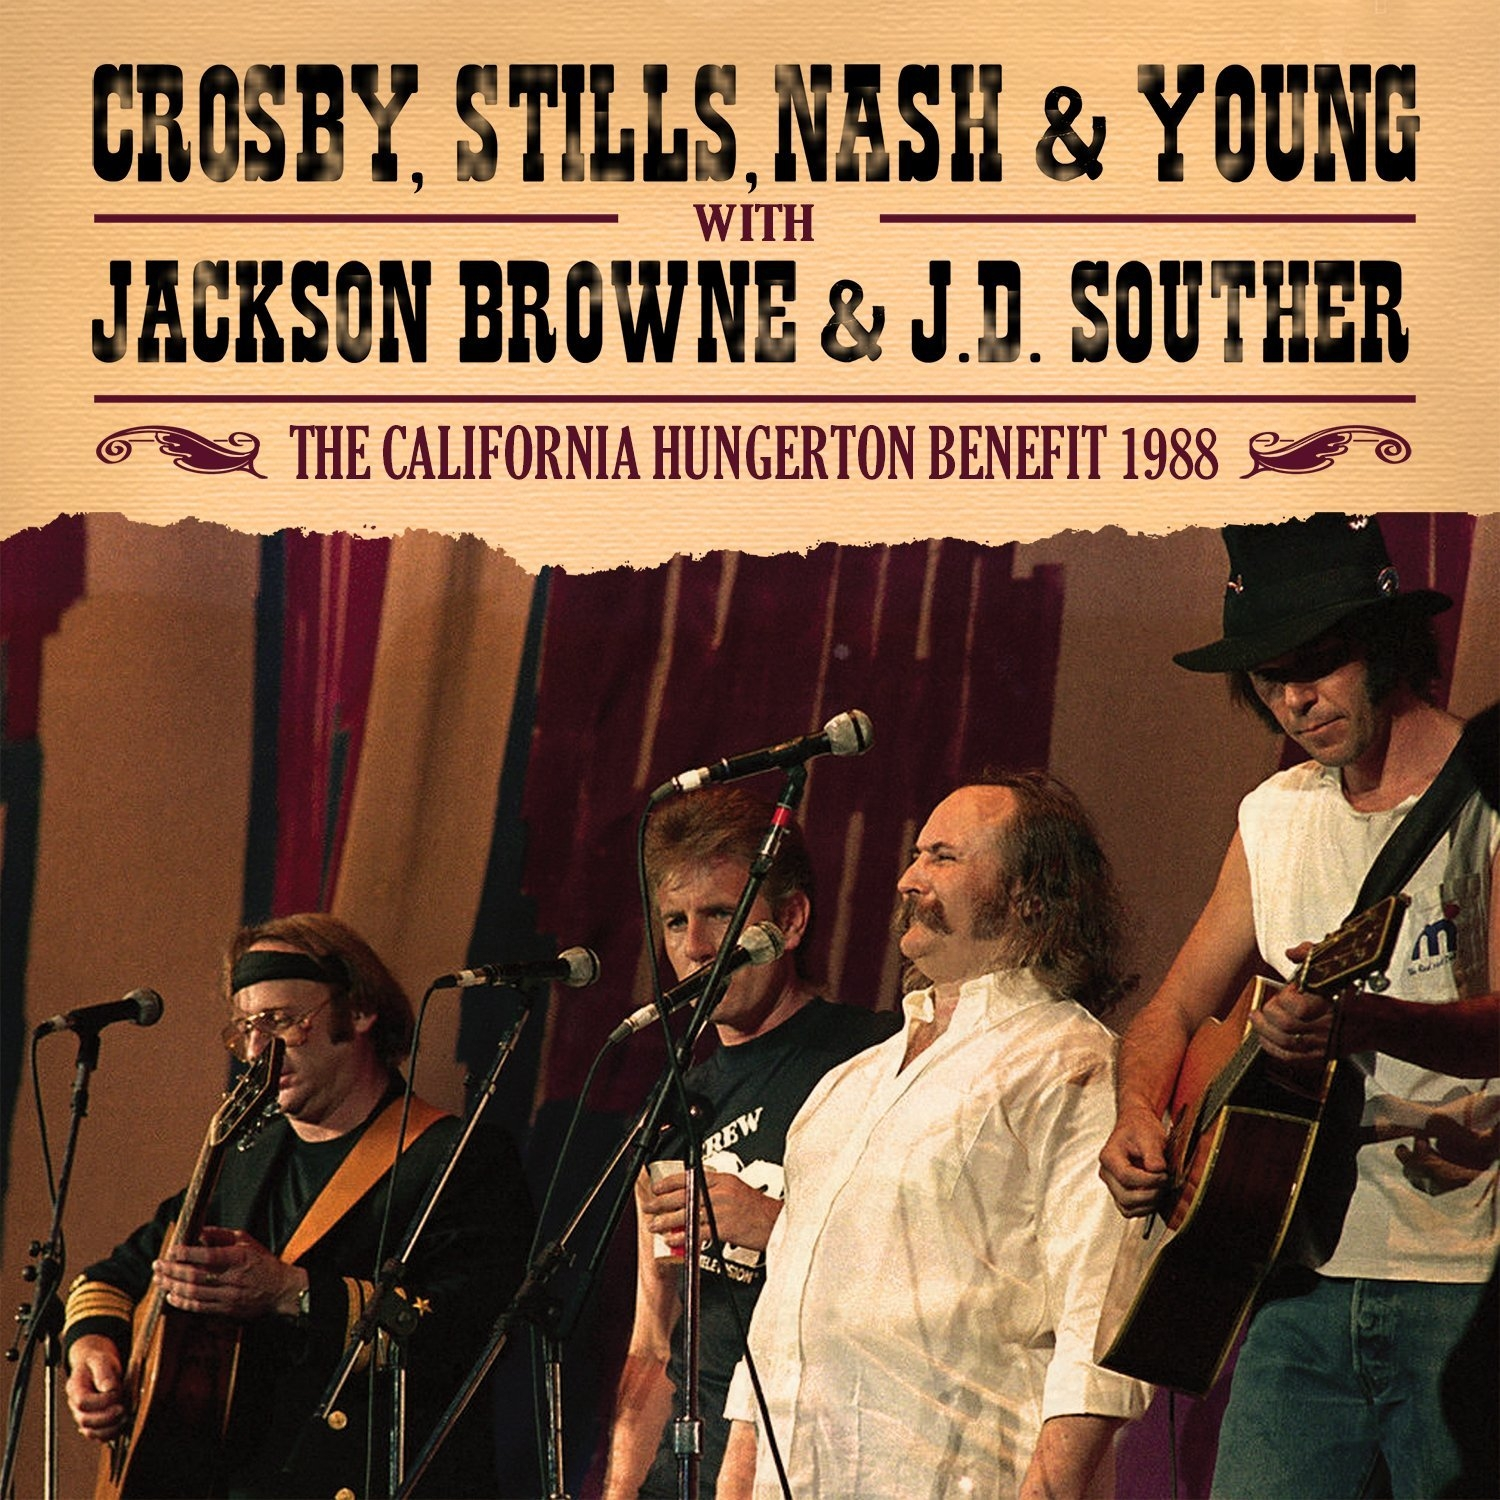 The California Hungerton Benefit 1988 By Crosby Stills